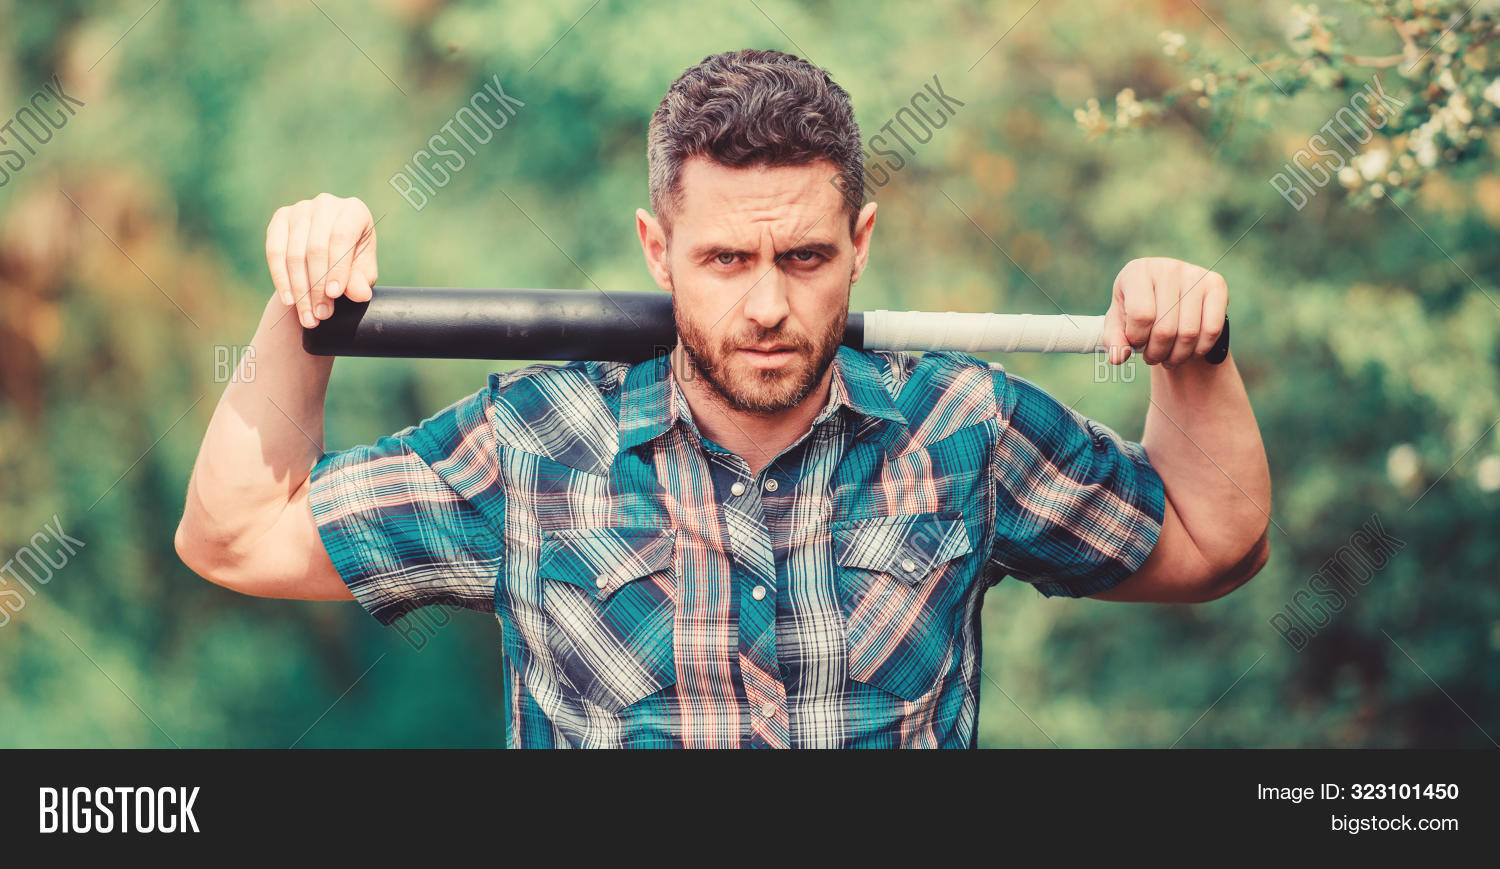 adult,aggression,anger,attack,baseball,bat,beard,bearded,black,bully,caucasian,concept,confident,crime,criminal,cudgel,danger,dangerous,energy,face,fashion,feel,guy,his,hold,hooligan,male,man,my,nature,power,principle,sport,strength,strict,strong,temper,trainer,unshaven,vandal,vintage,violence,weapon,wild,workout